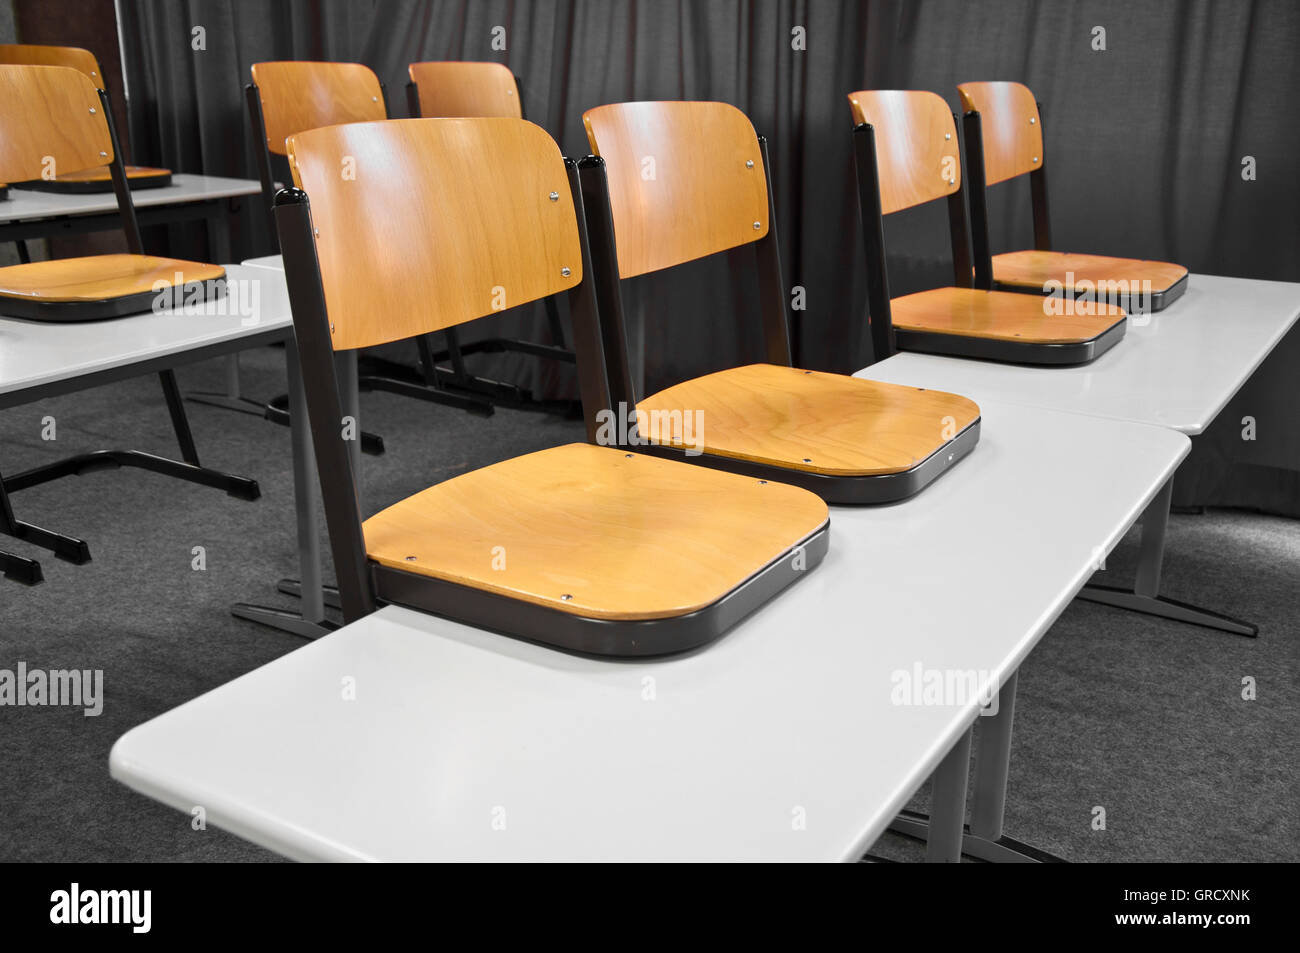 Chairs In A German Classroom - Stock Image